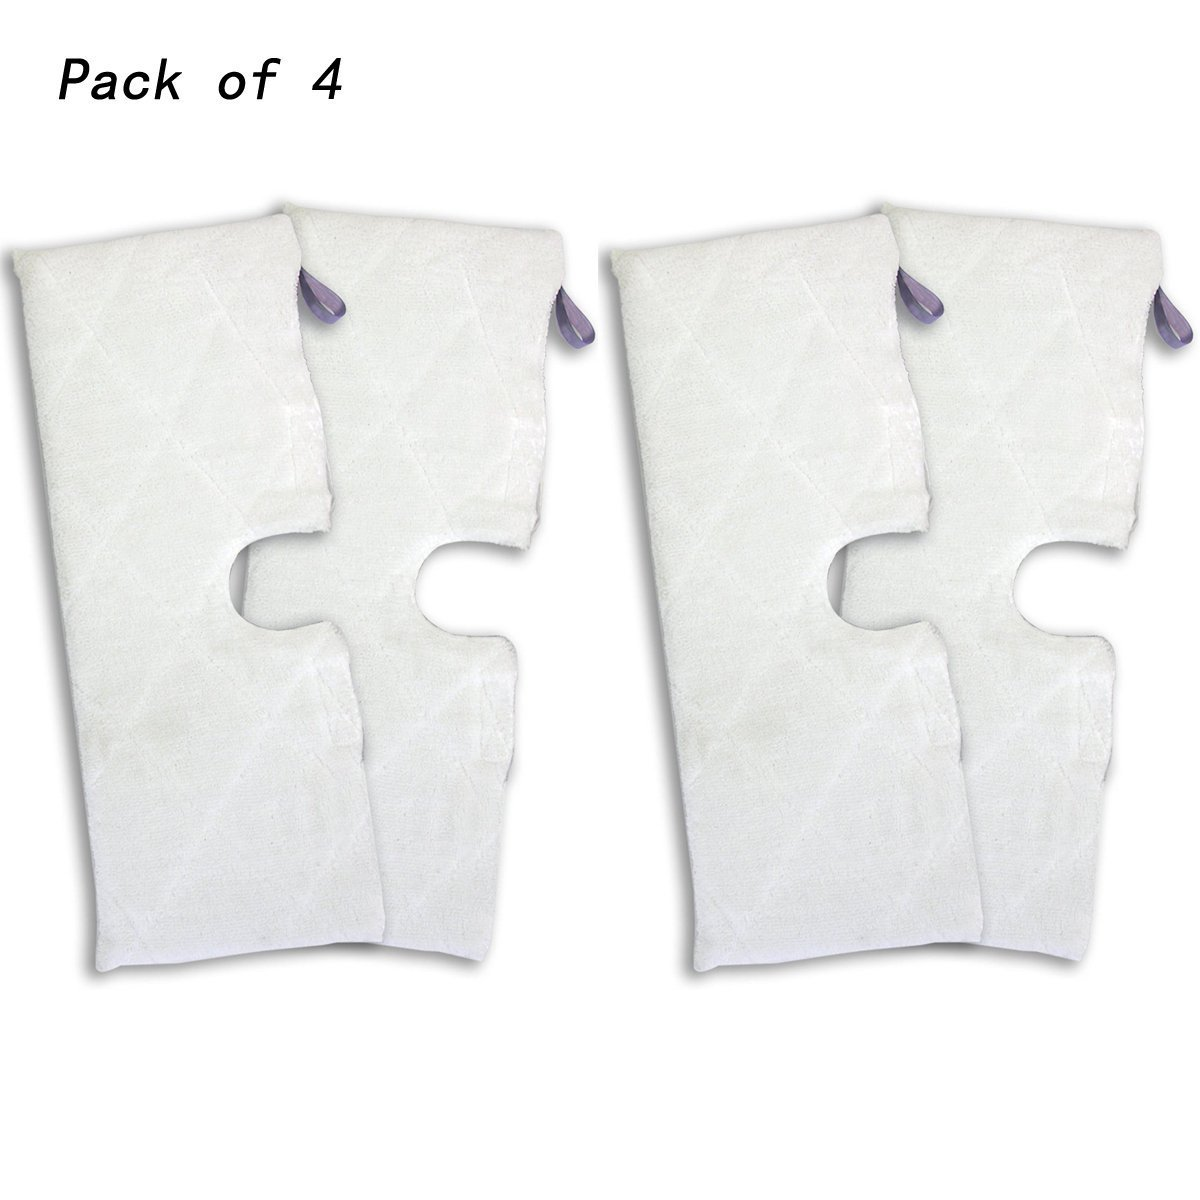 Agile-shop 4pcs Replacement XL Microfiber Cleaning Pads for Shark Pocket Steam Mop XLT3501 by Agile-shop